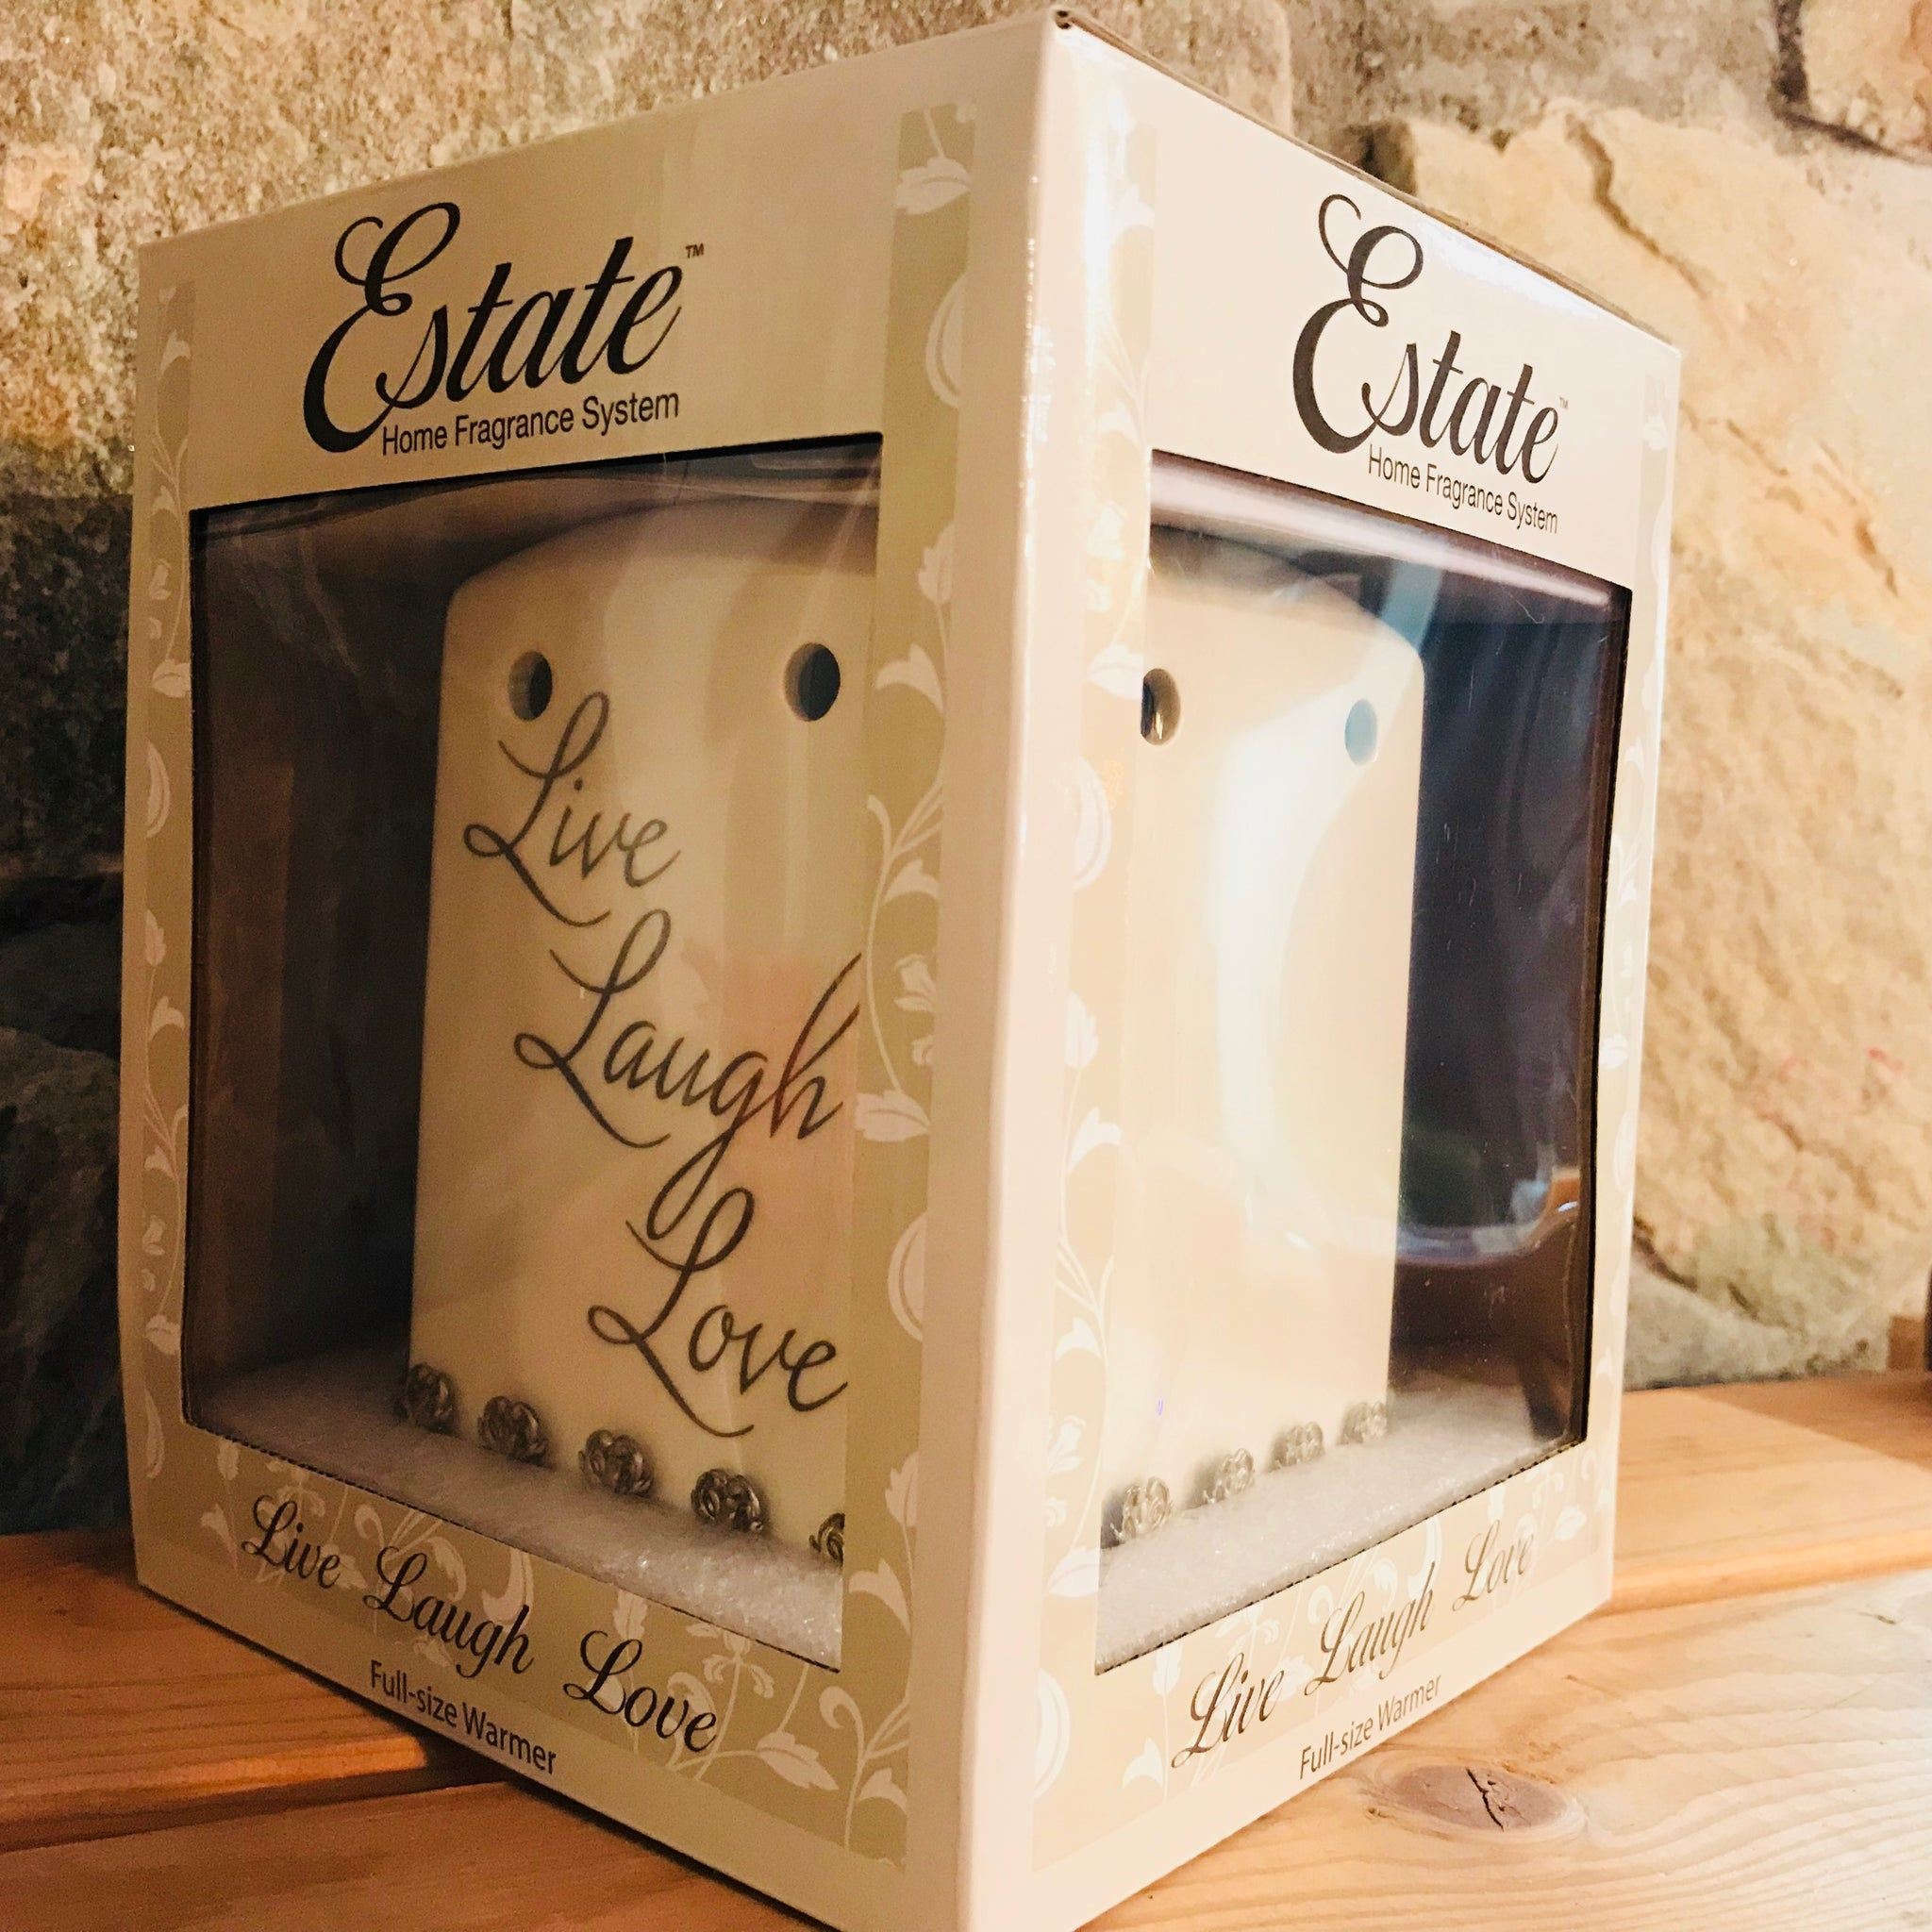 Live Laugh Love Ceramic Electric Wax Warmer by Estate